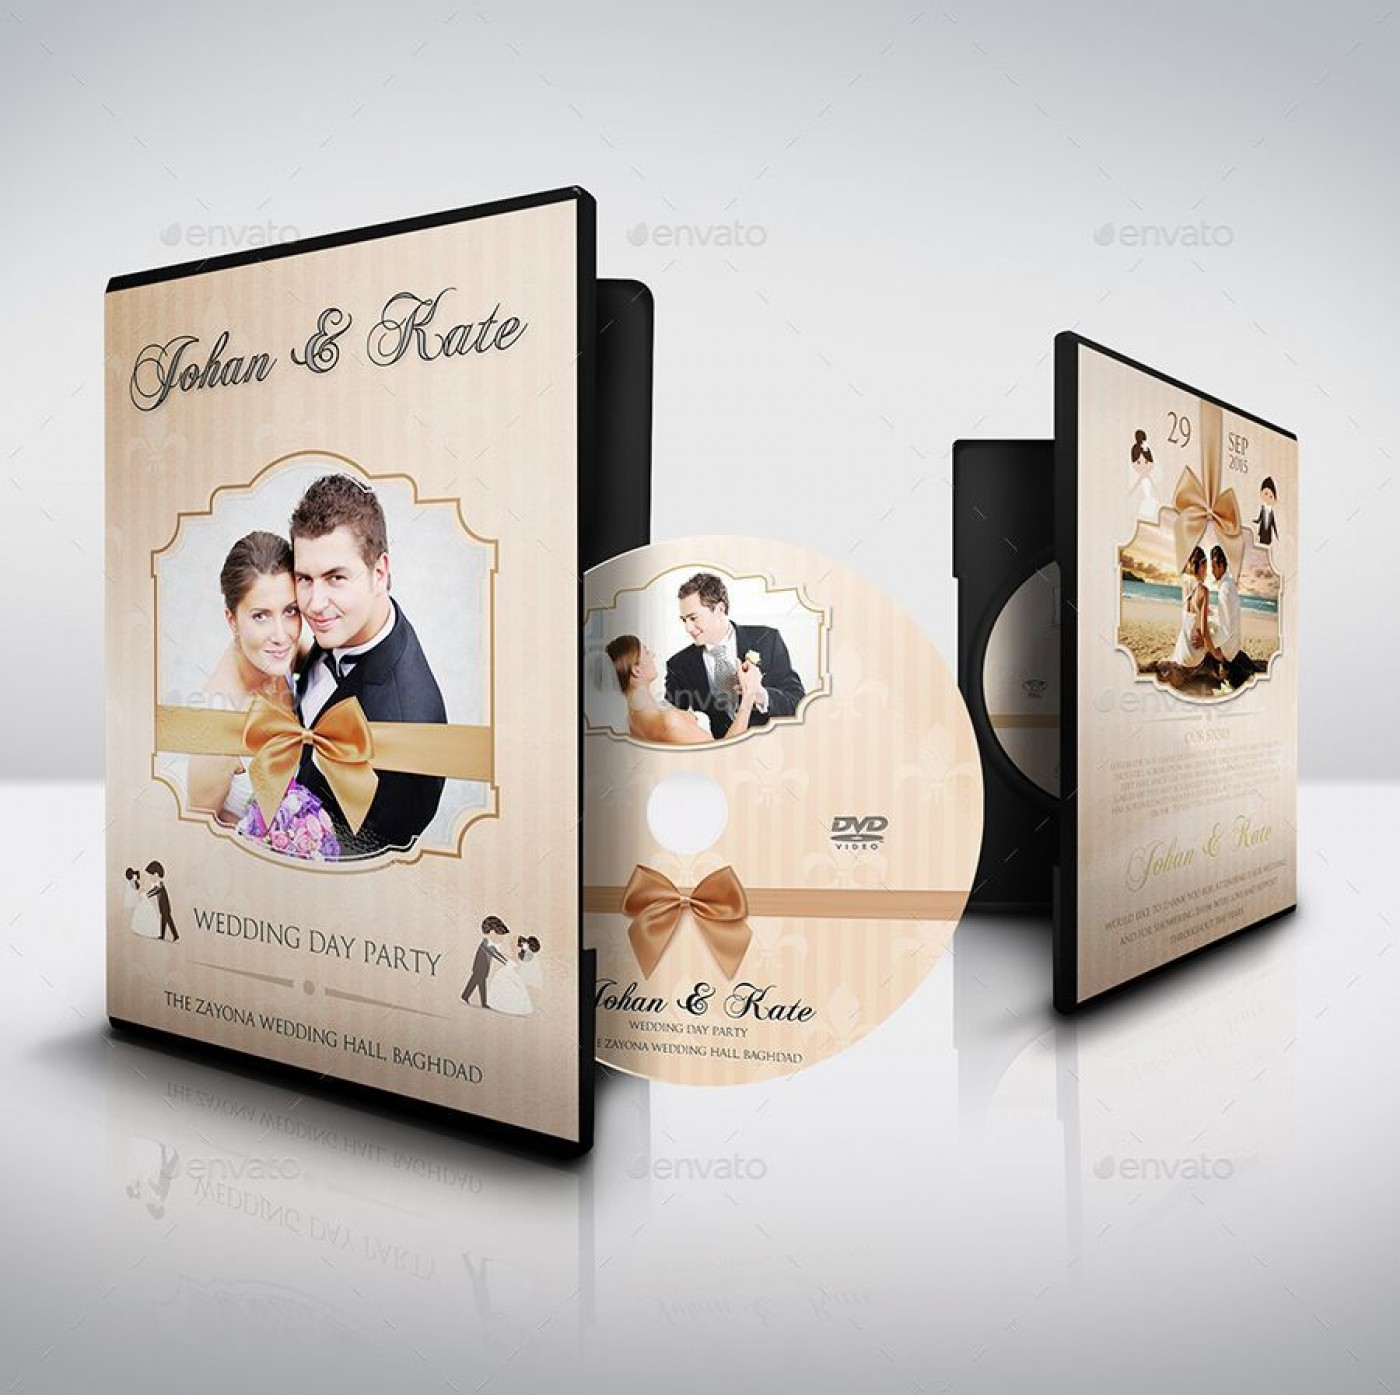 007 Stunning Wedding Cd Cover Design Template Free Download Picture 1400